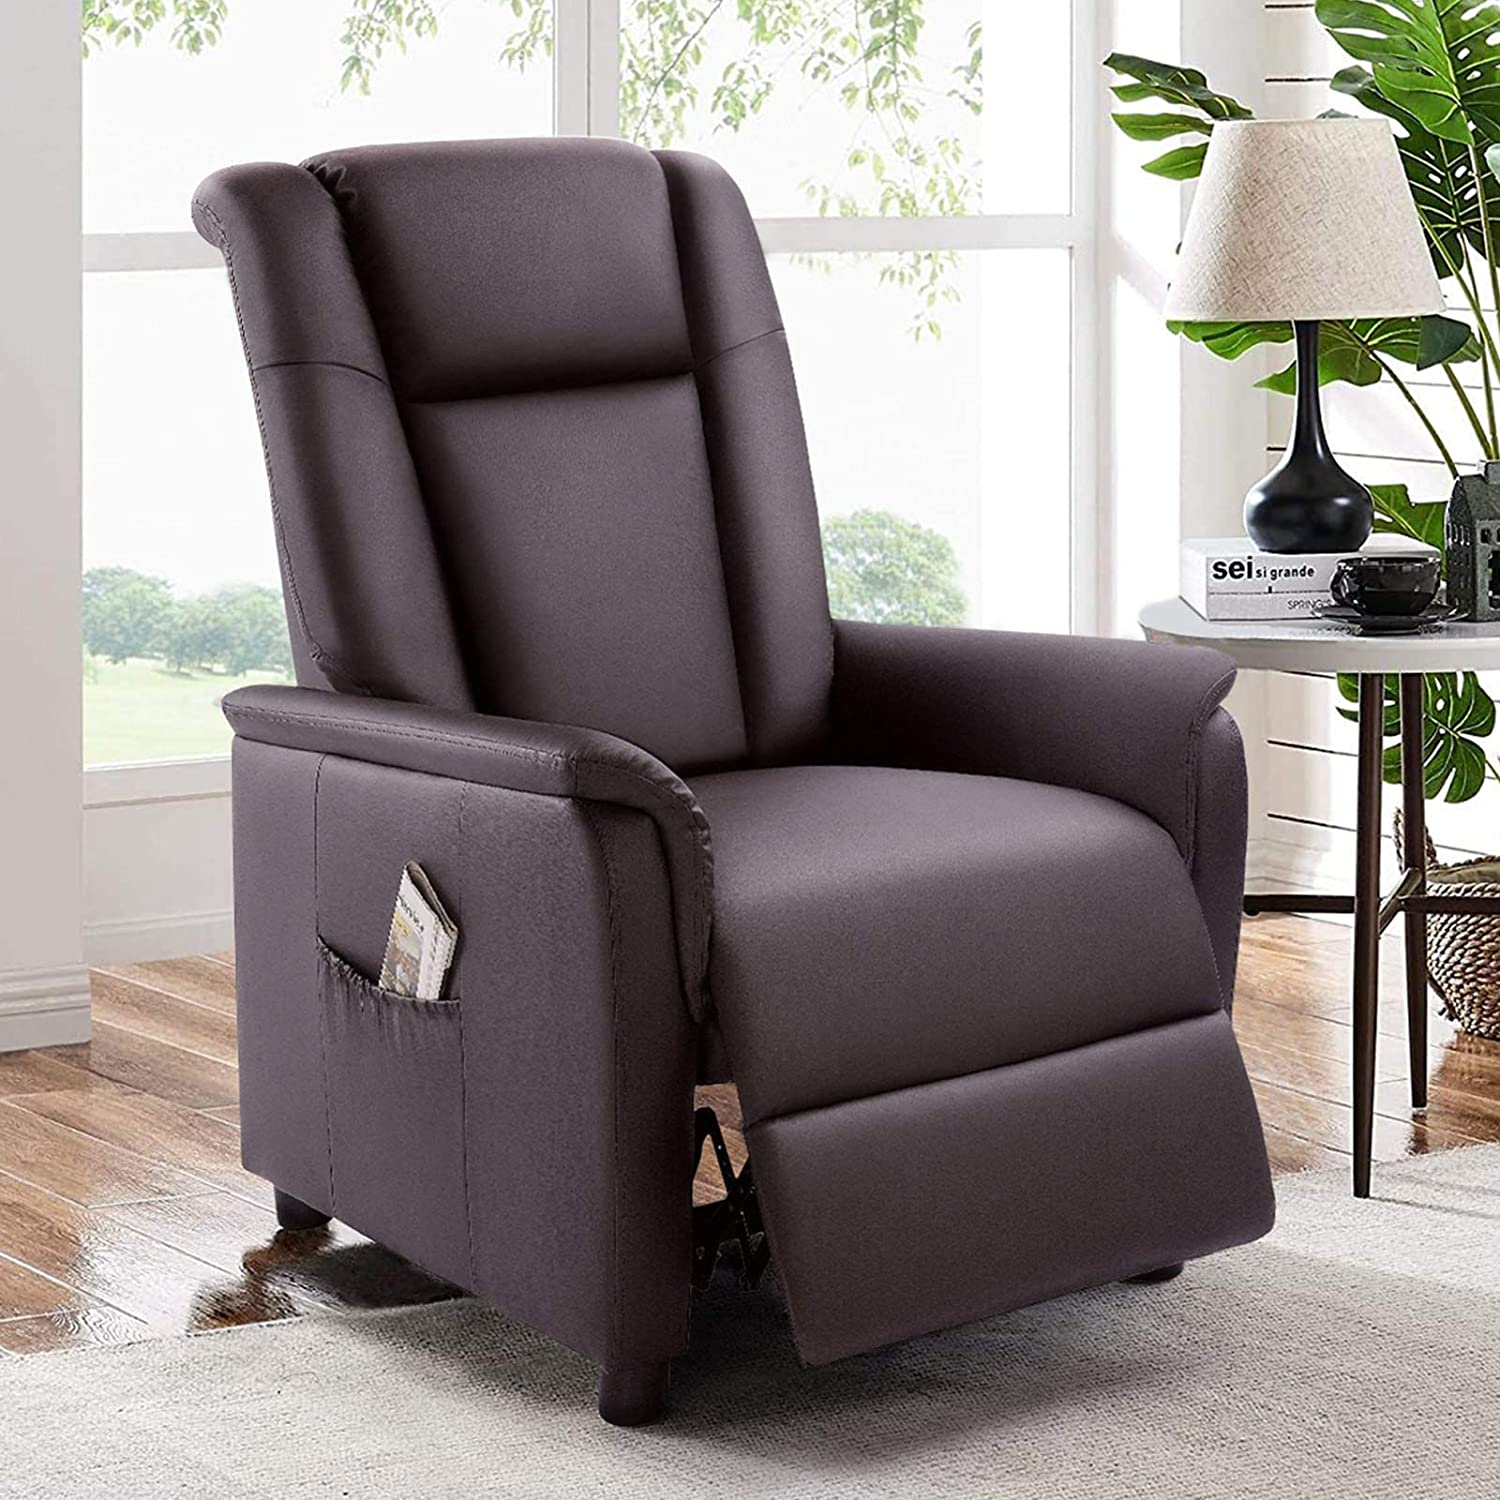 BOSSIN Single Recliner Chair Sofa Padded Seat PU Leather Living Room Sofa Recliner Modern Recliner Seat Club Chair Home Theater Seating with Pocket(Leather, Brown)